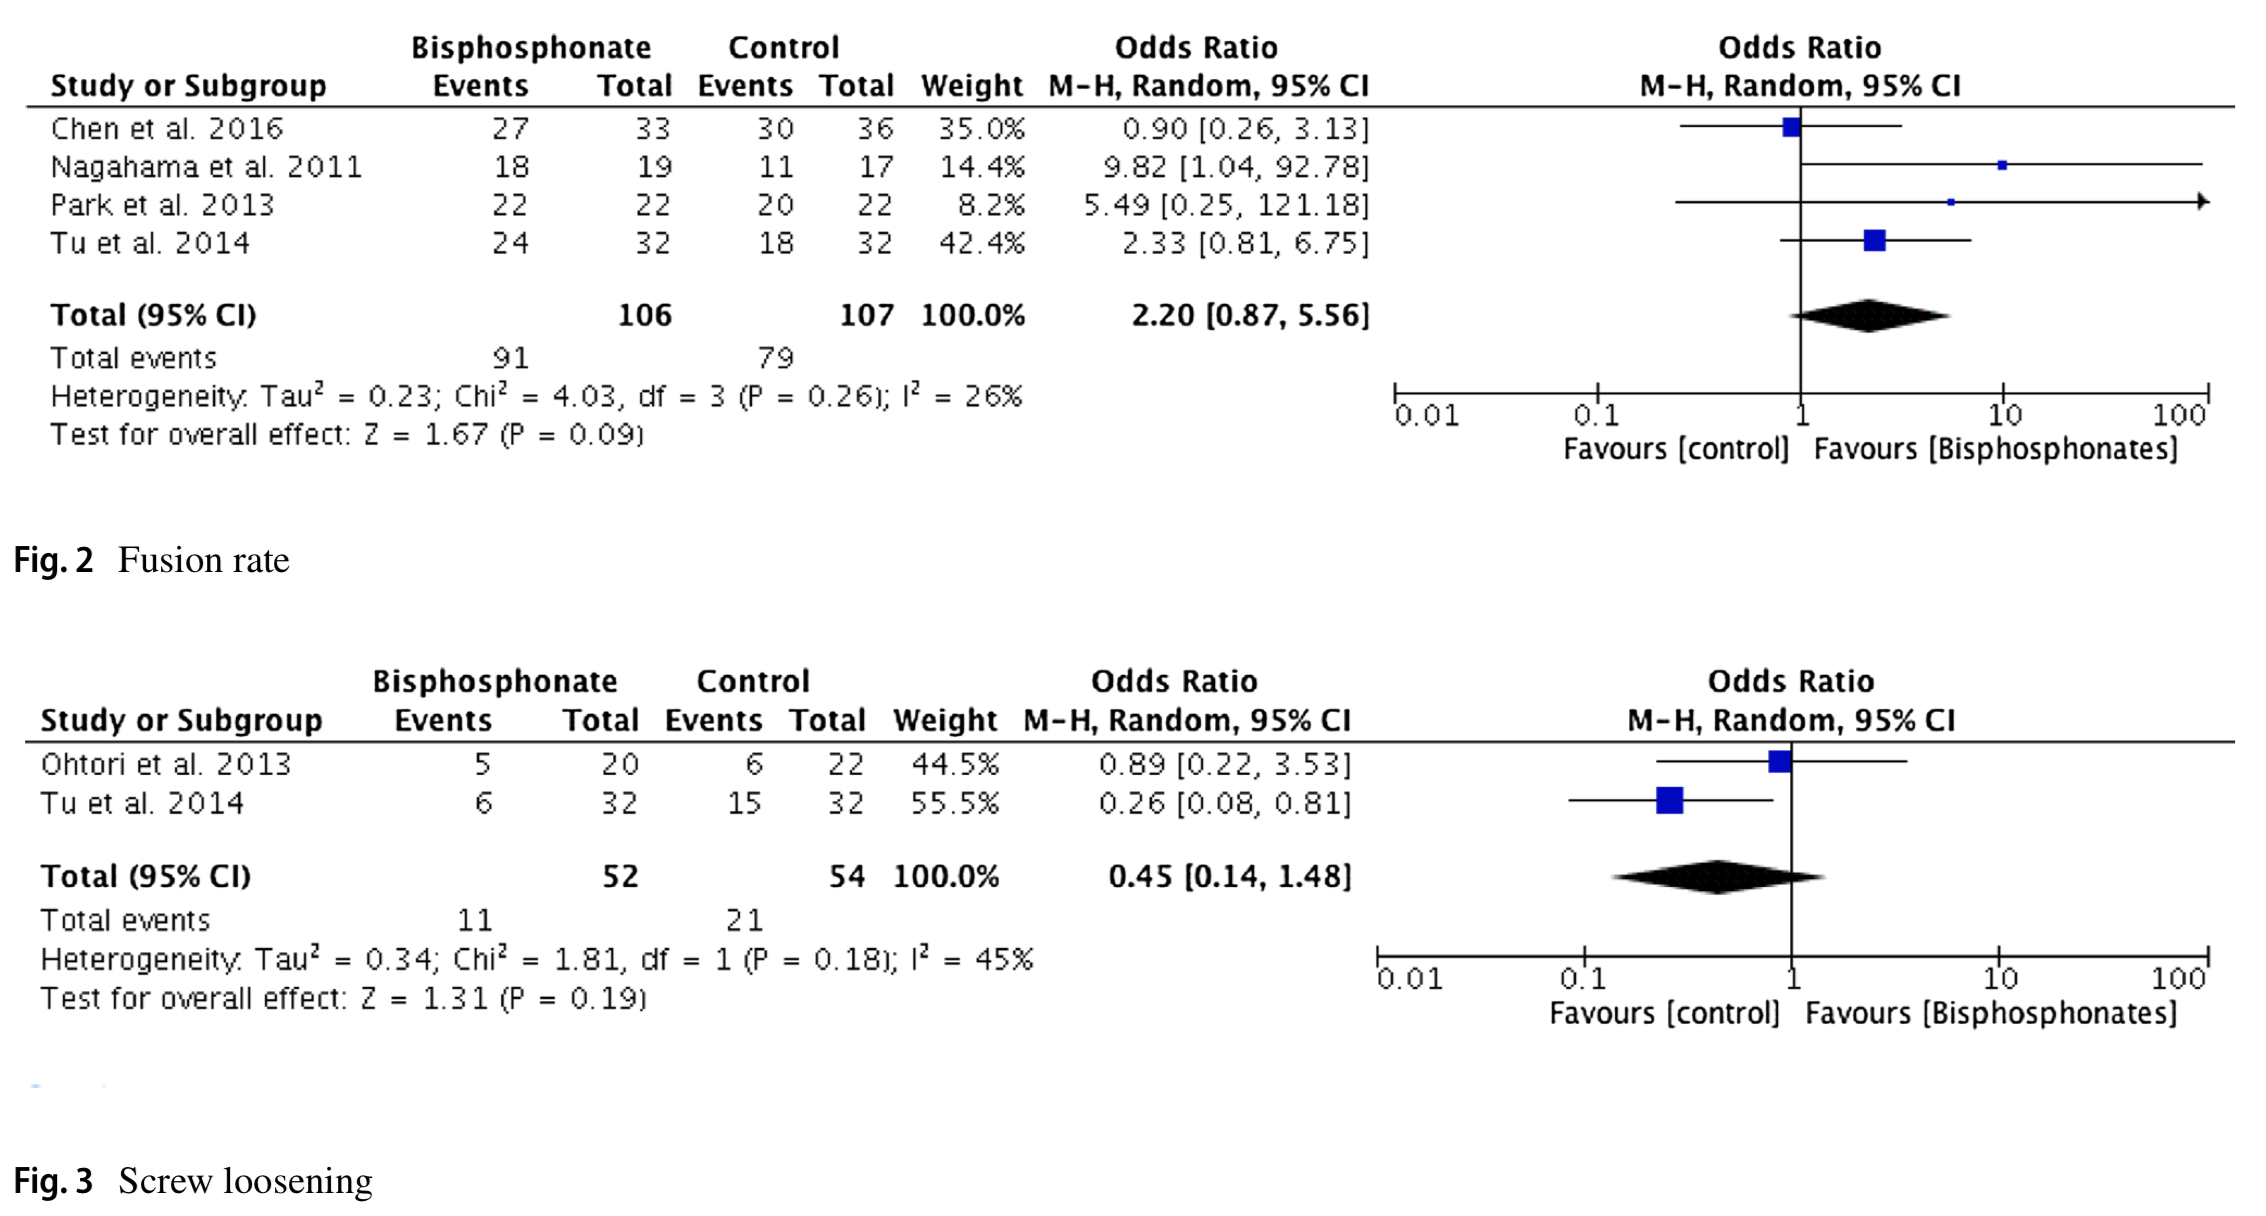 Radiographic and functional outcomes of bisphosphonate use in lumbar fusion: a systematic review and meta-analysis of comparative studies